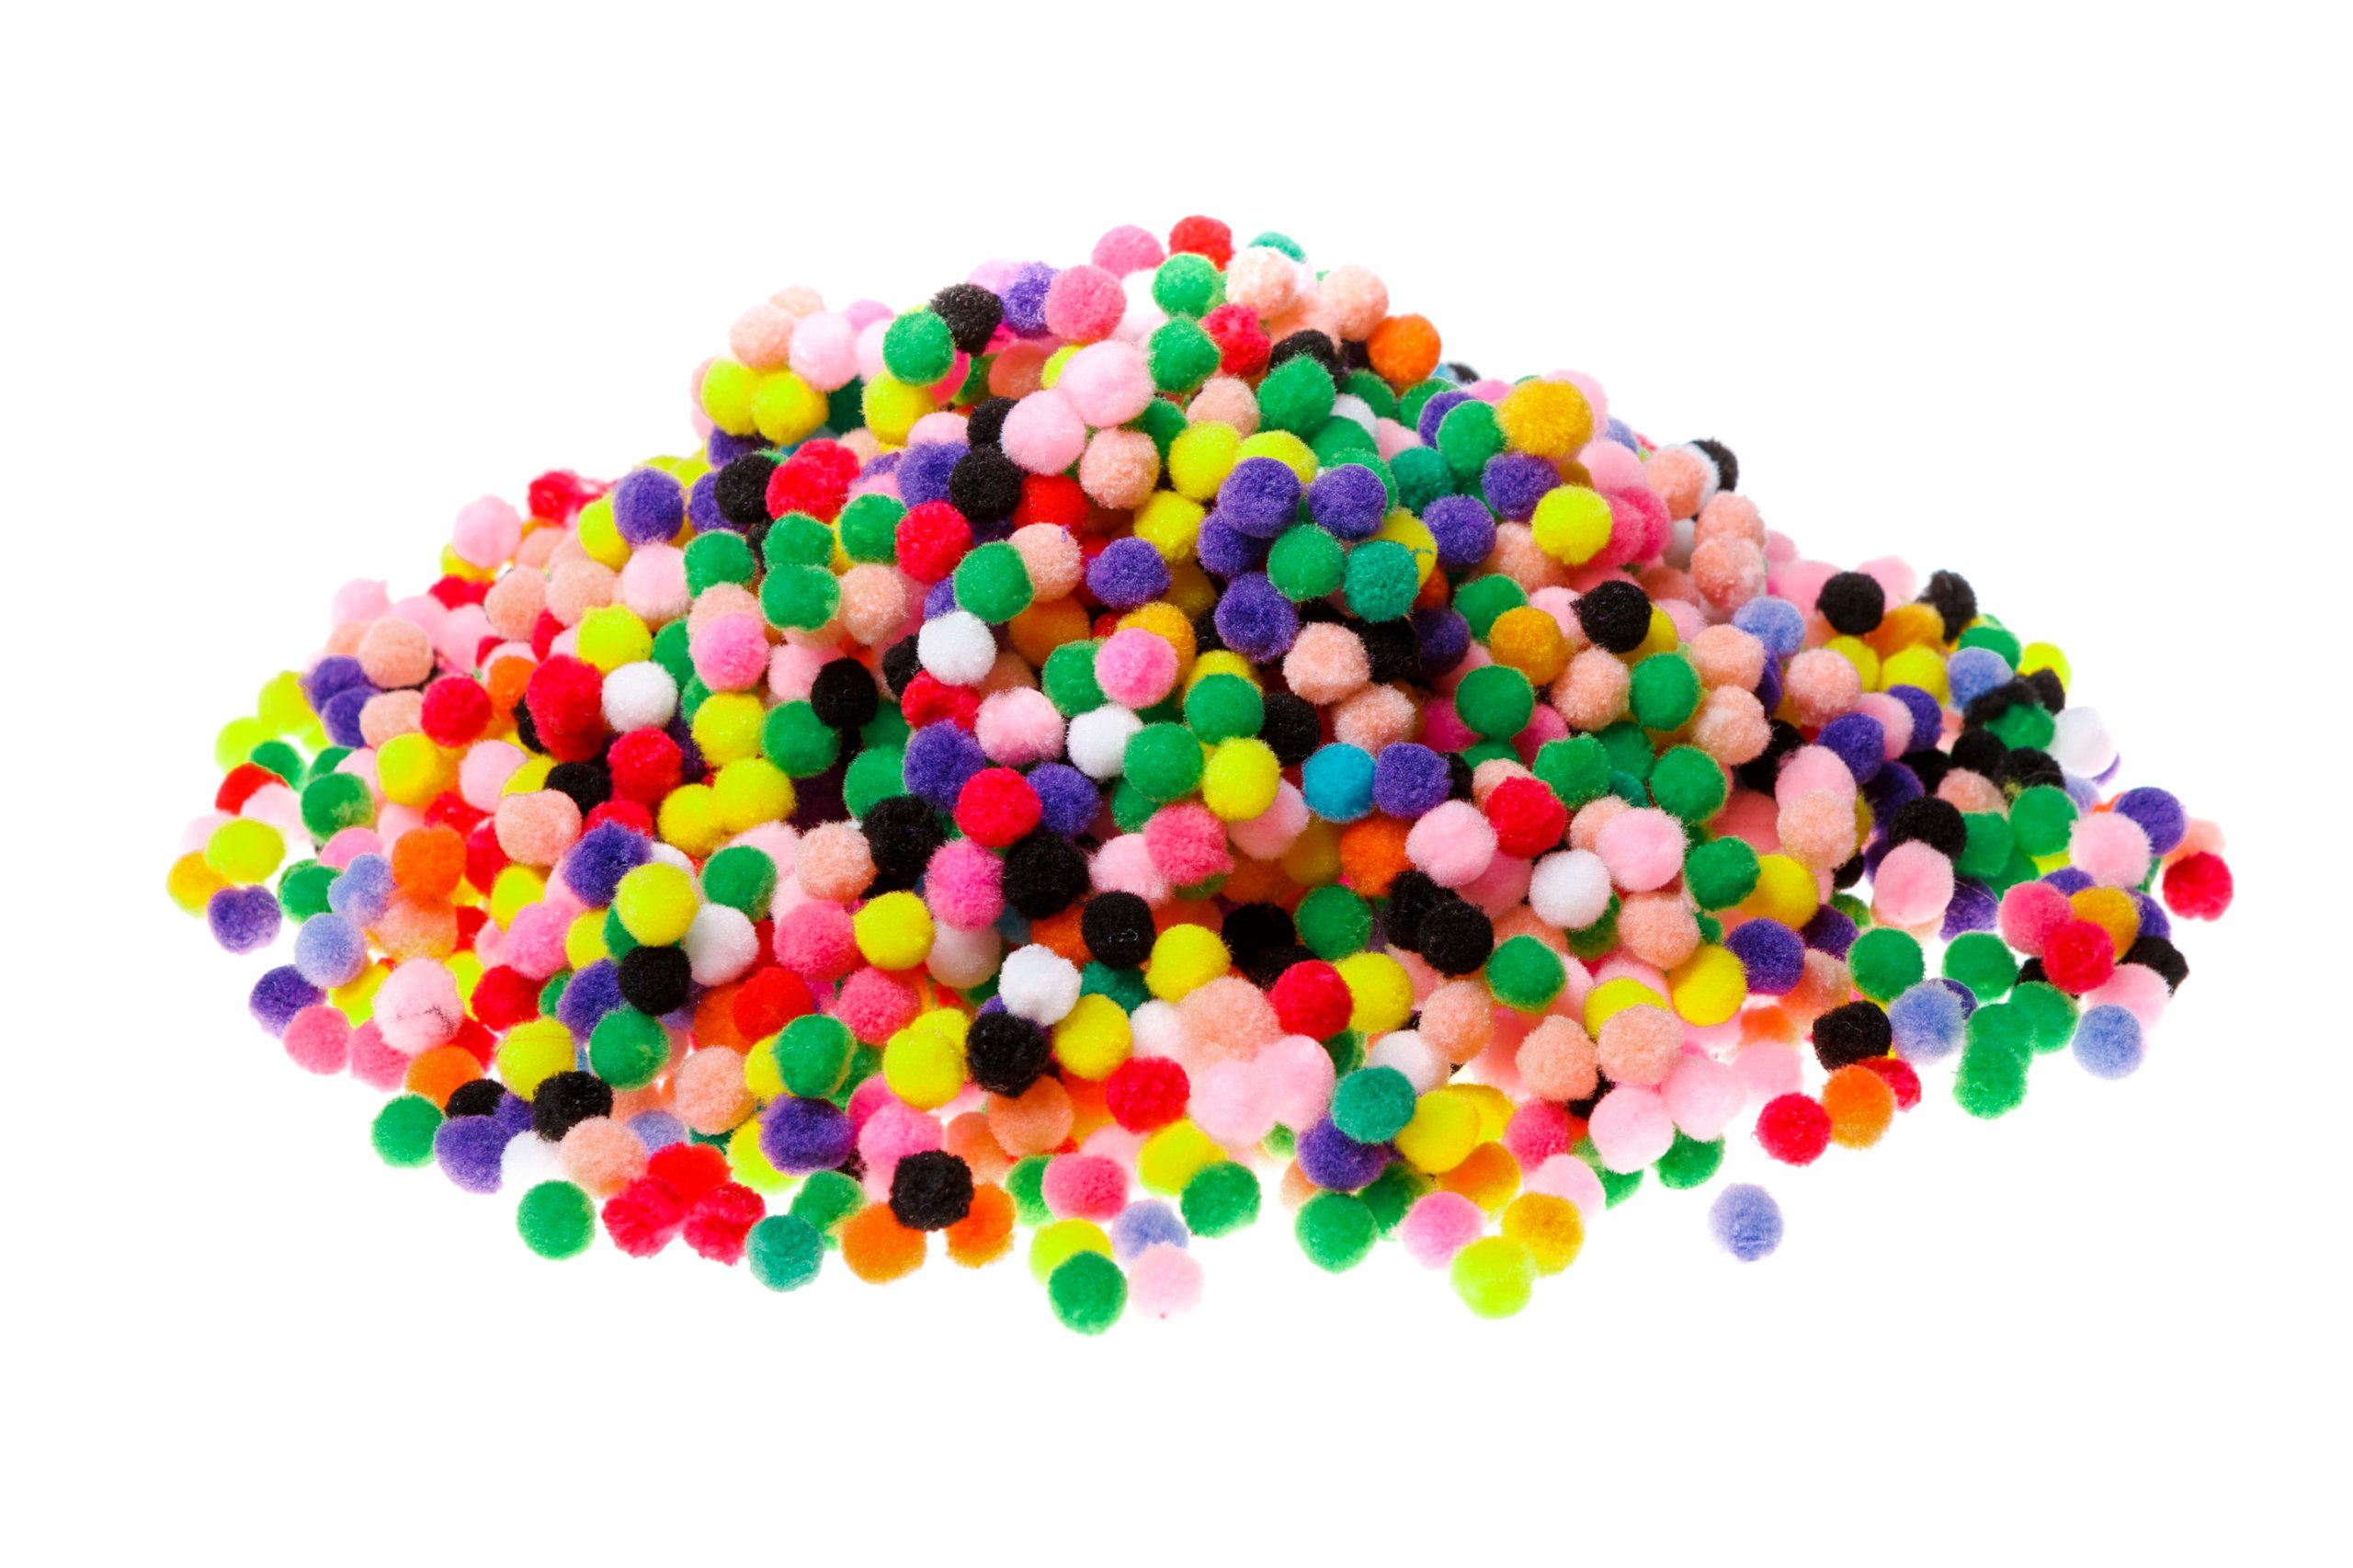 Item The POM-POM MIX color 100pcs DECORATIVE POMPONIKI